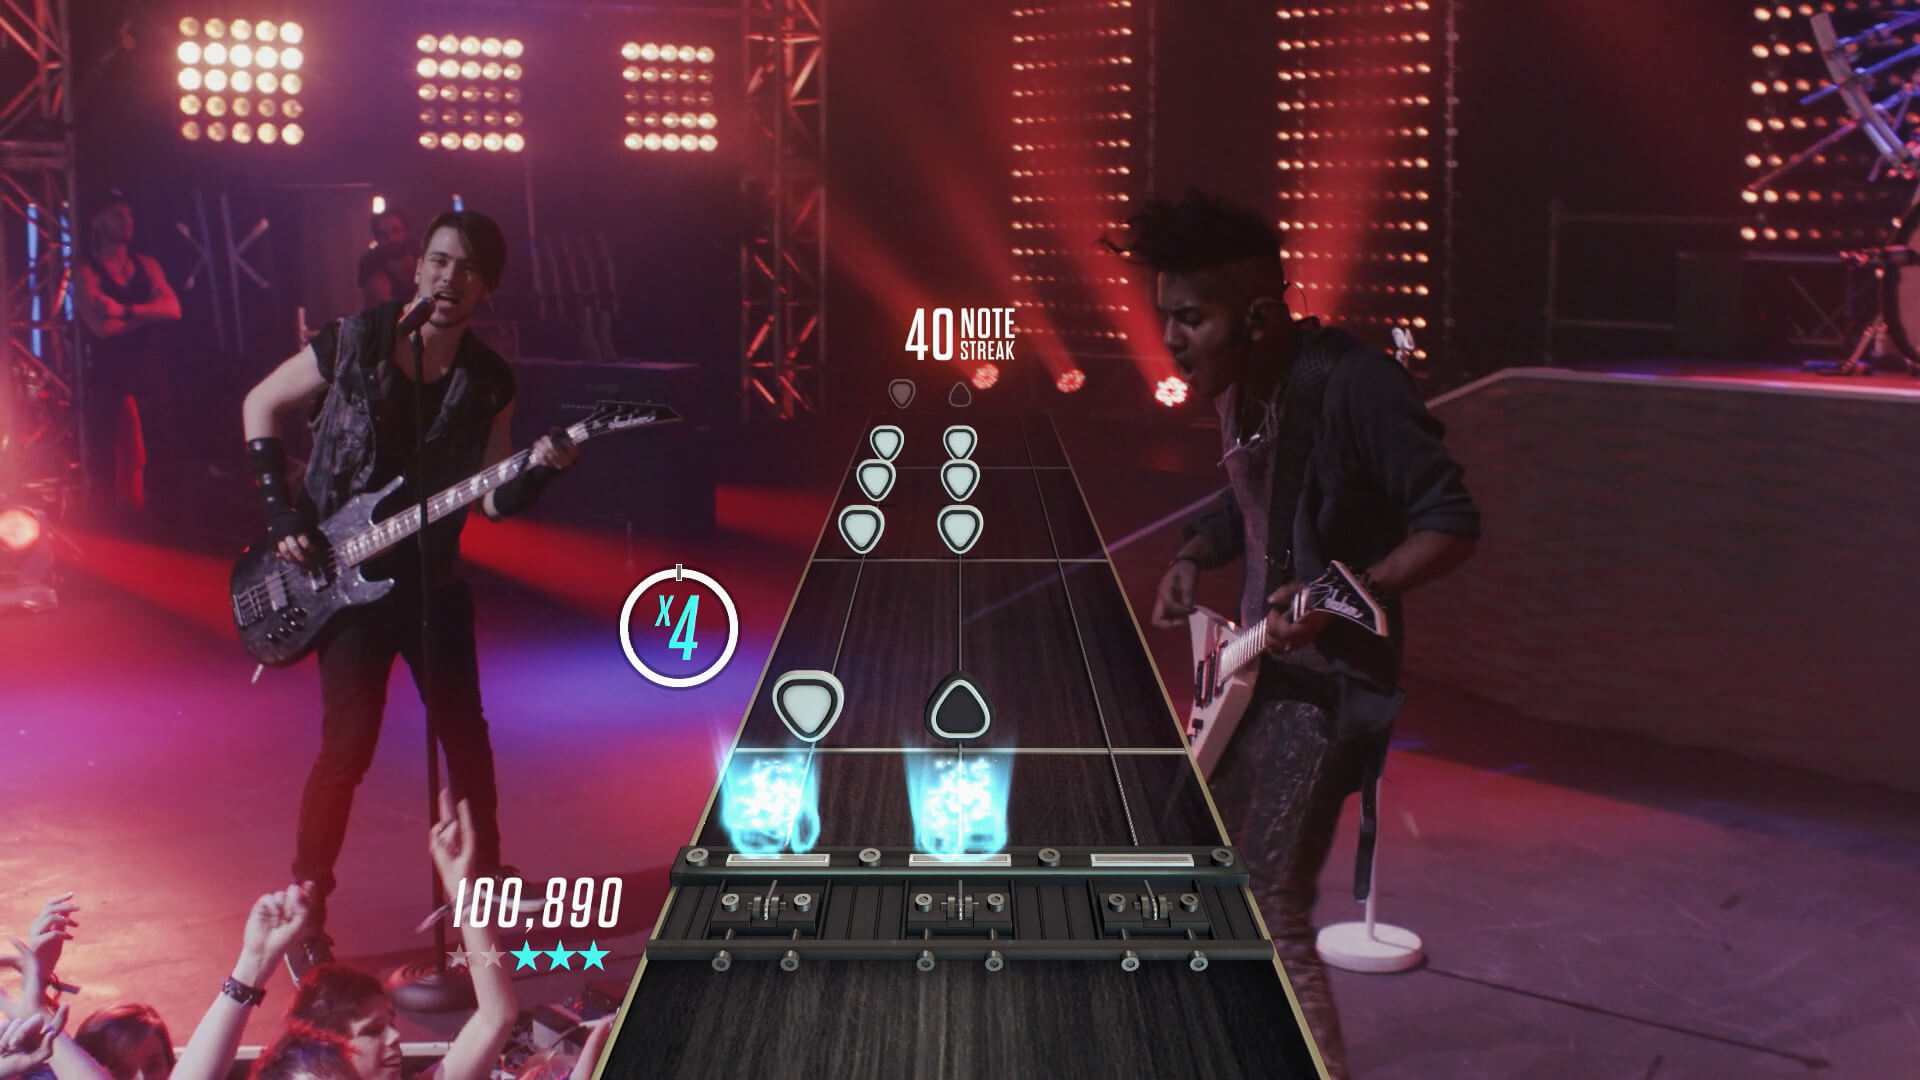 Guitar Hero Arcade Video Game - BMIGaming com